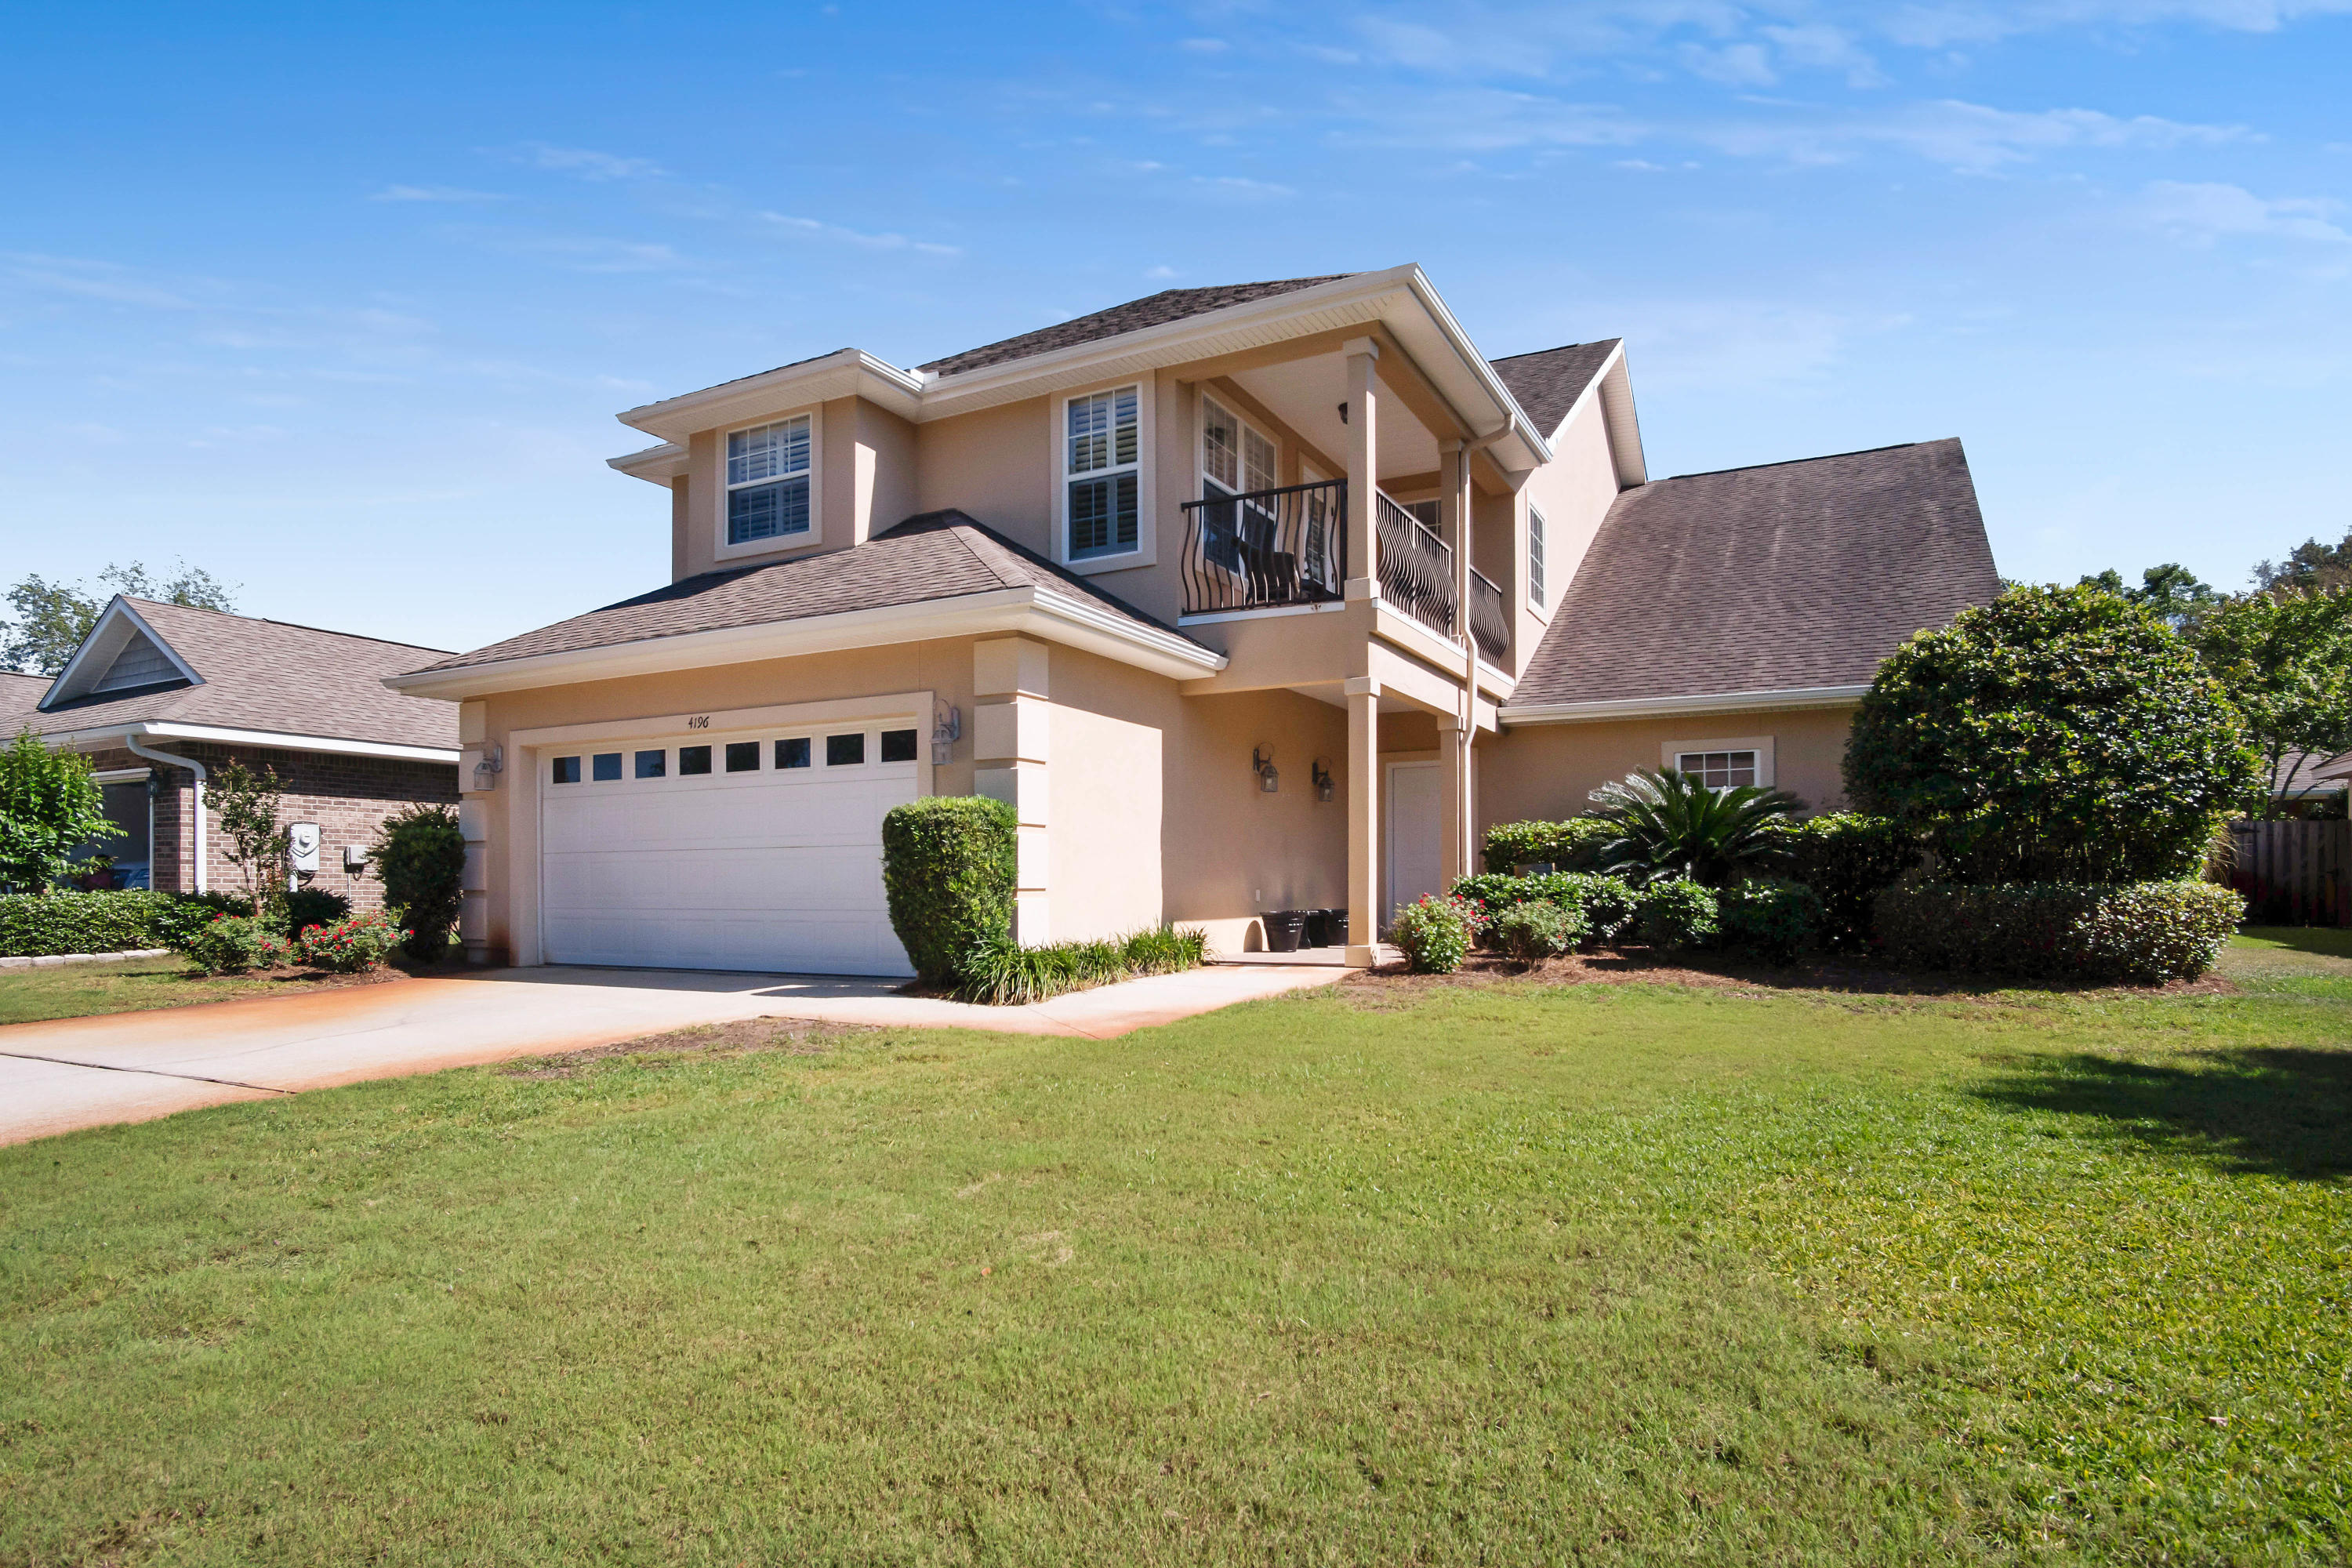 4196  Mossy Cove Court, Niceville in Okaloosa County, FL 32578 Home for Sale